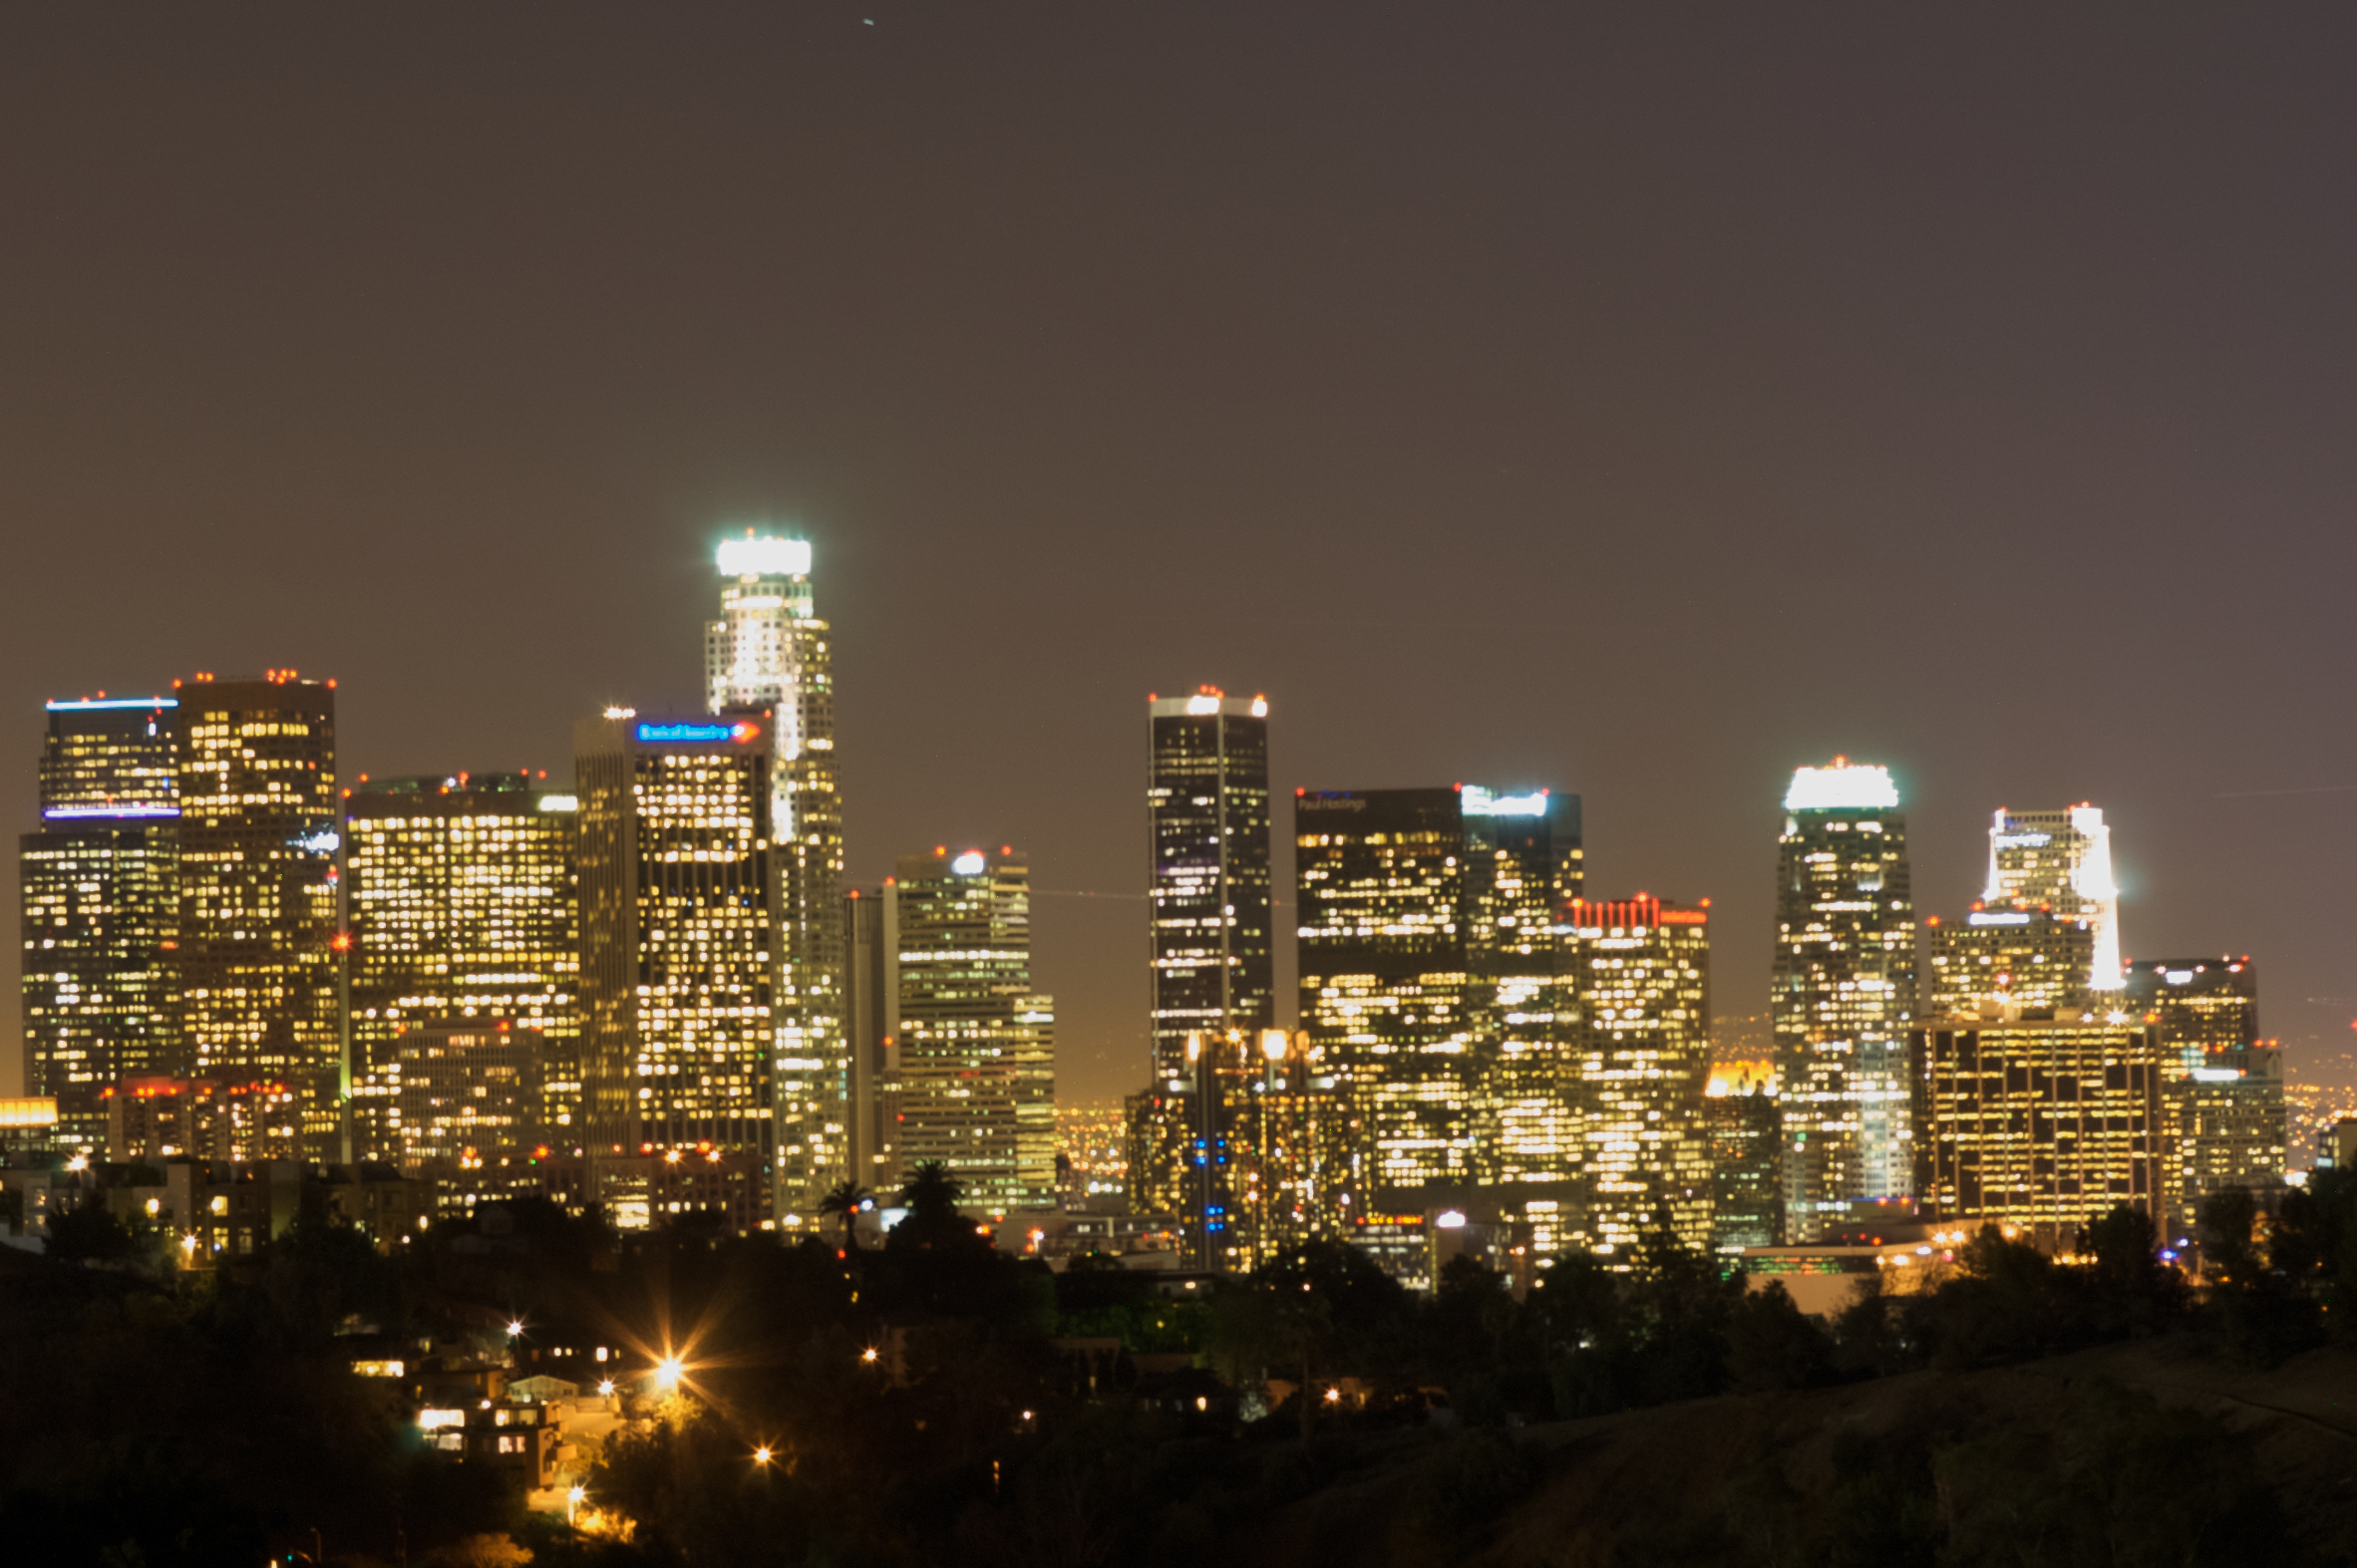 los Angeles skyline at